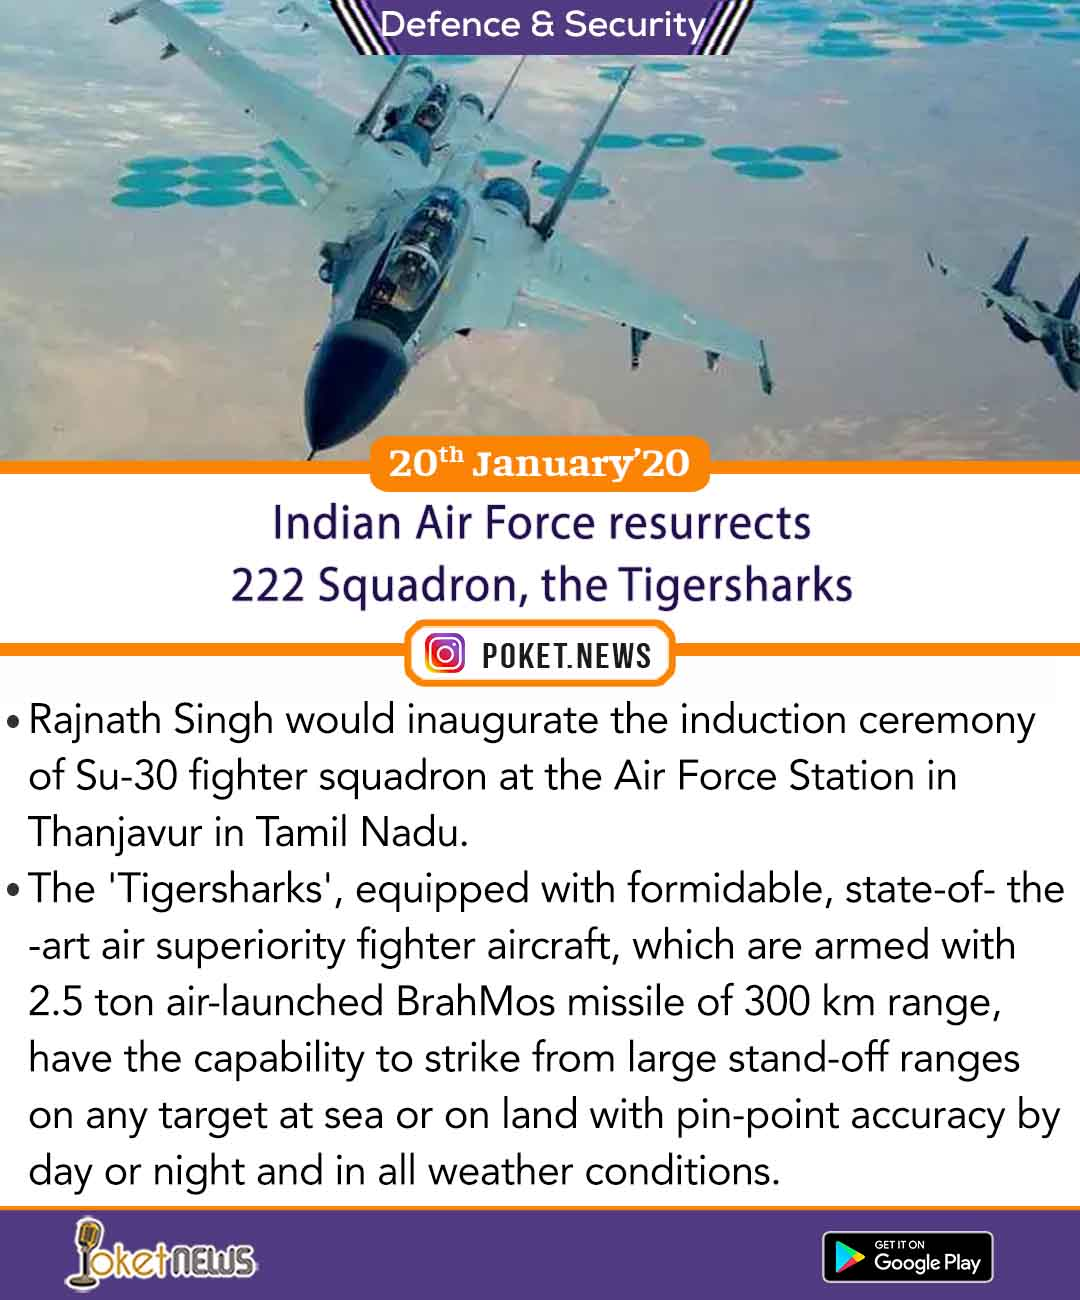 Indian Air Force resurrects 222 Squadron, the Tigersharks